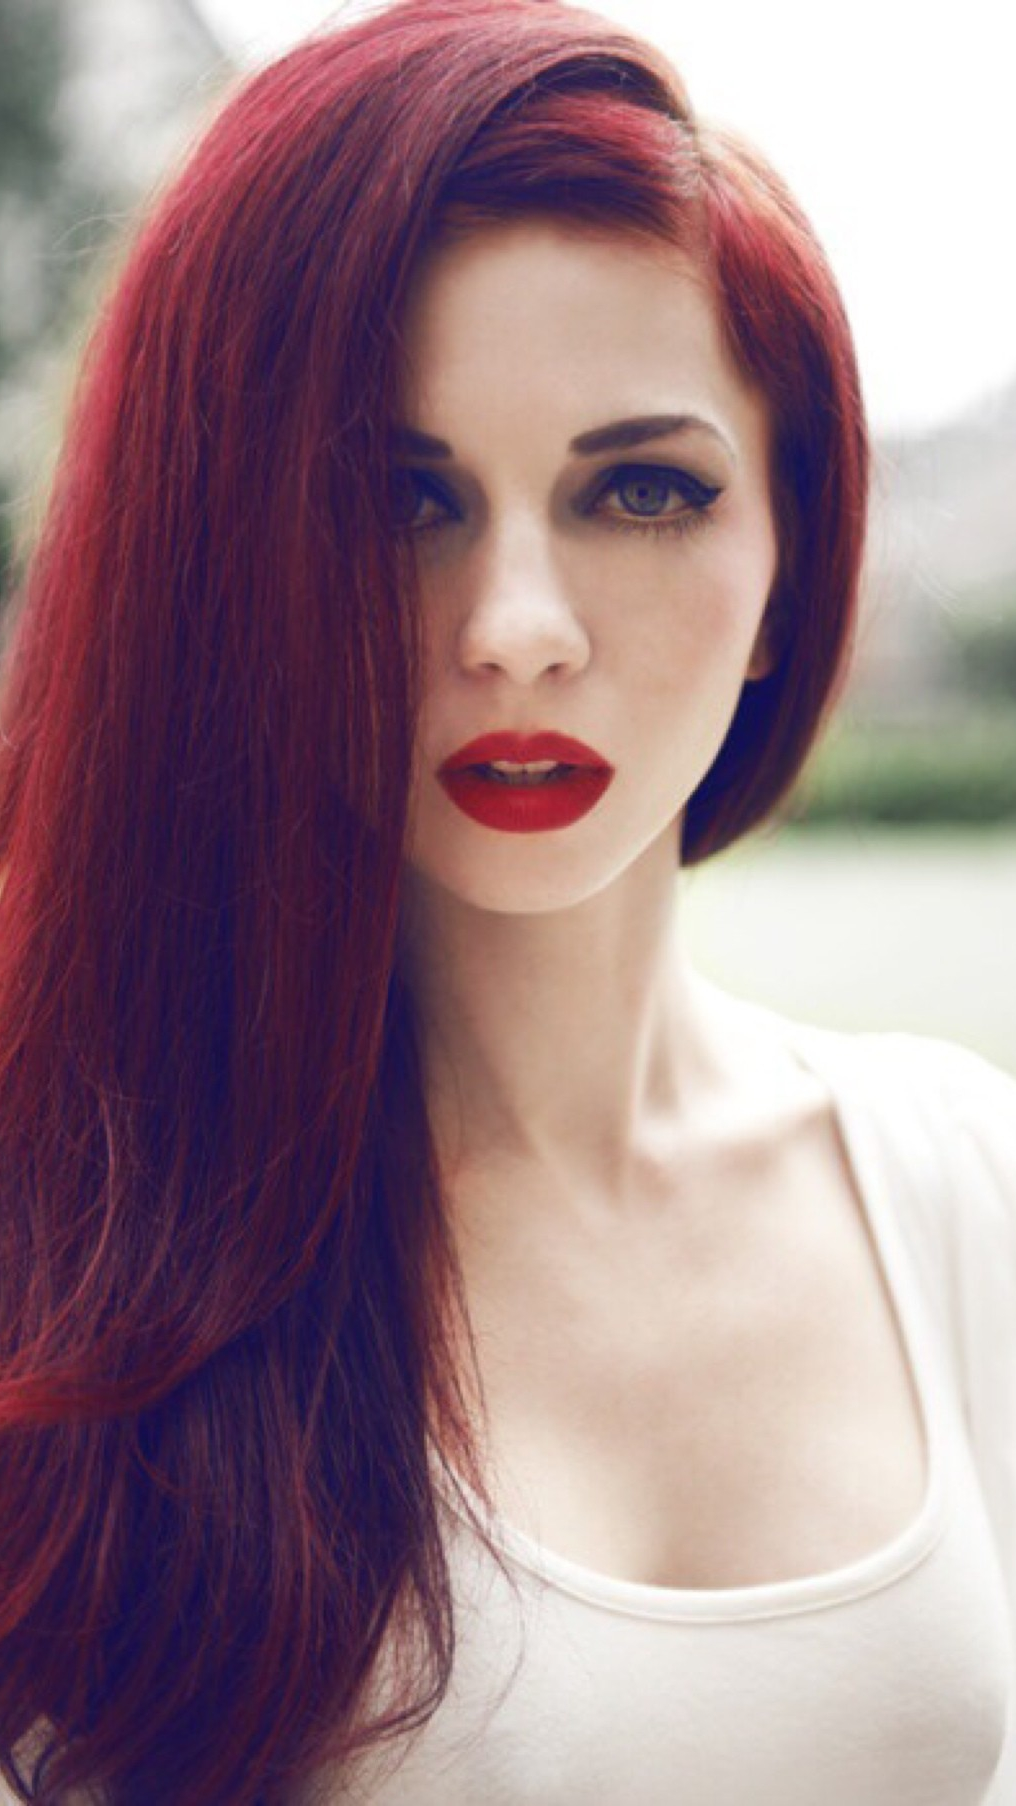 Red Hairs Red Lips Girl iPhone Wallpaper iPhone Wallpaper iphoneswallpapers com